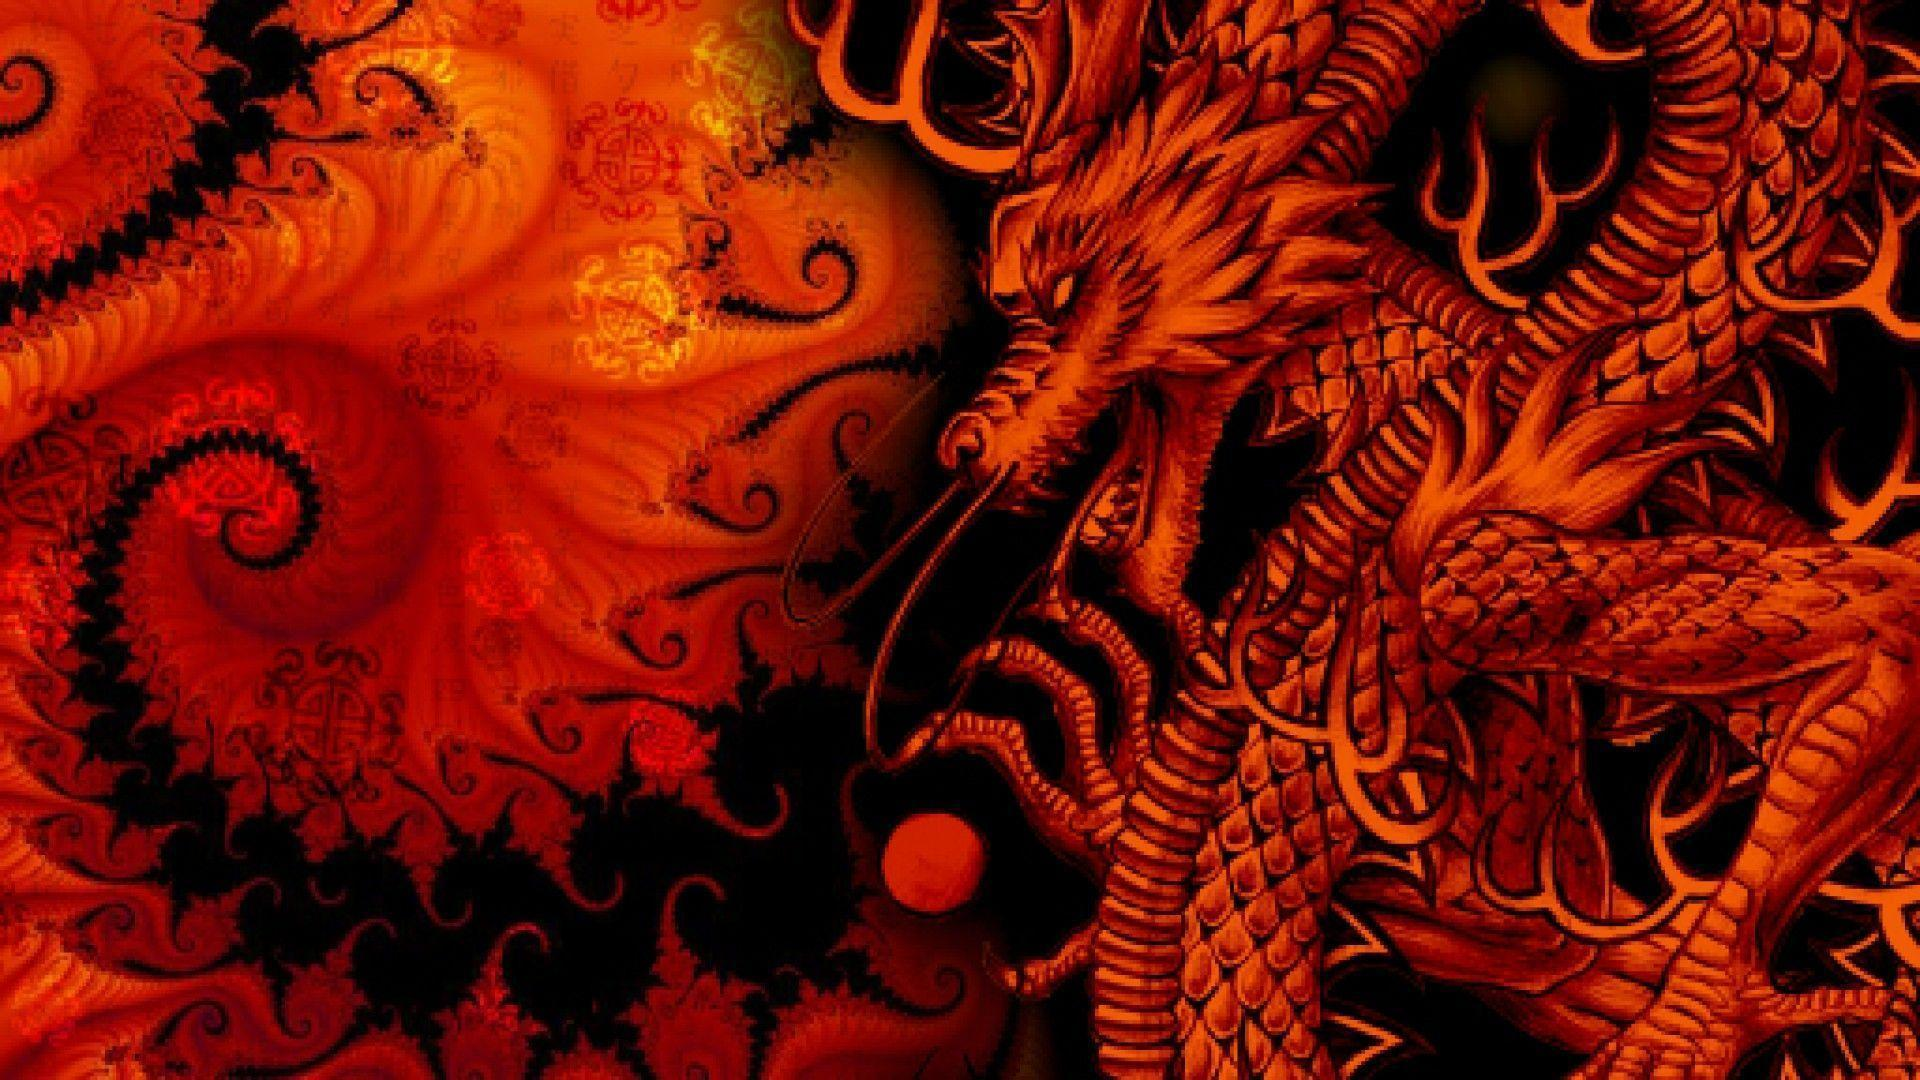 orange glow dragons wallpaper - photo #6